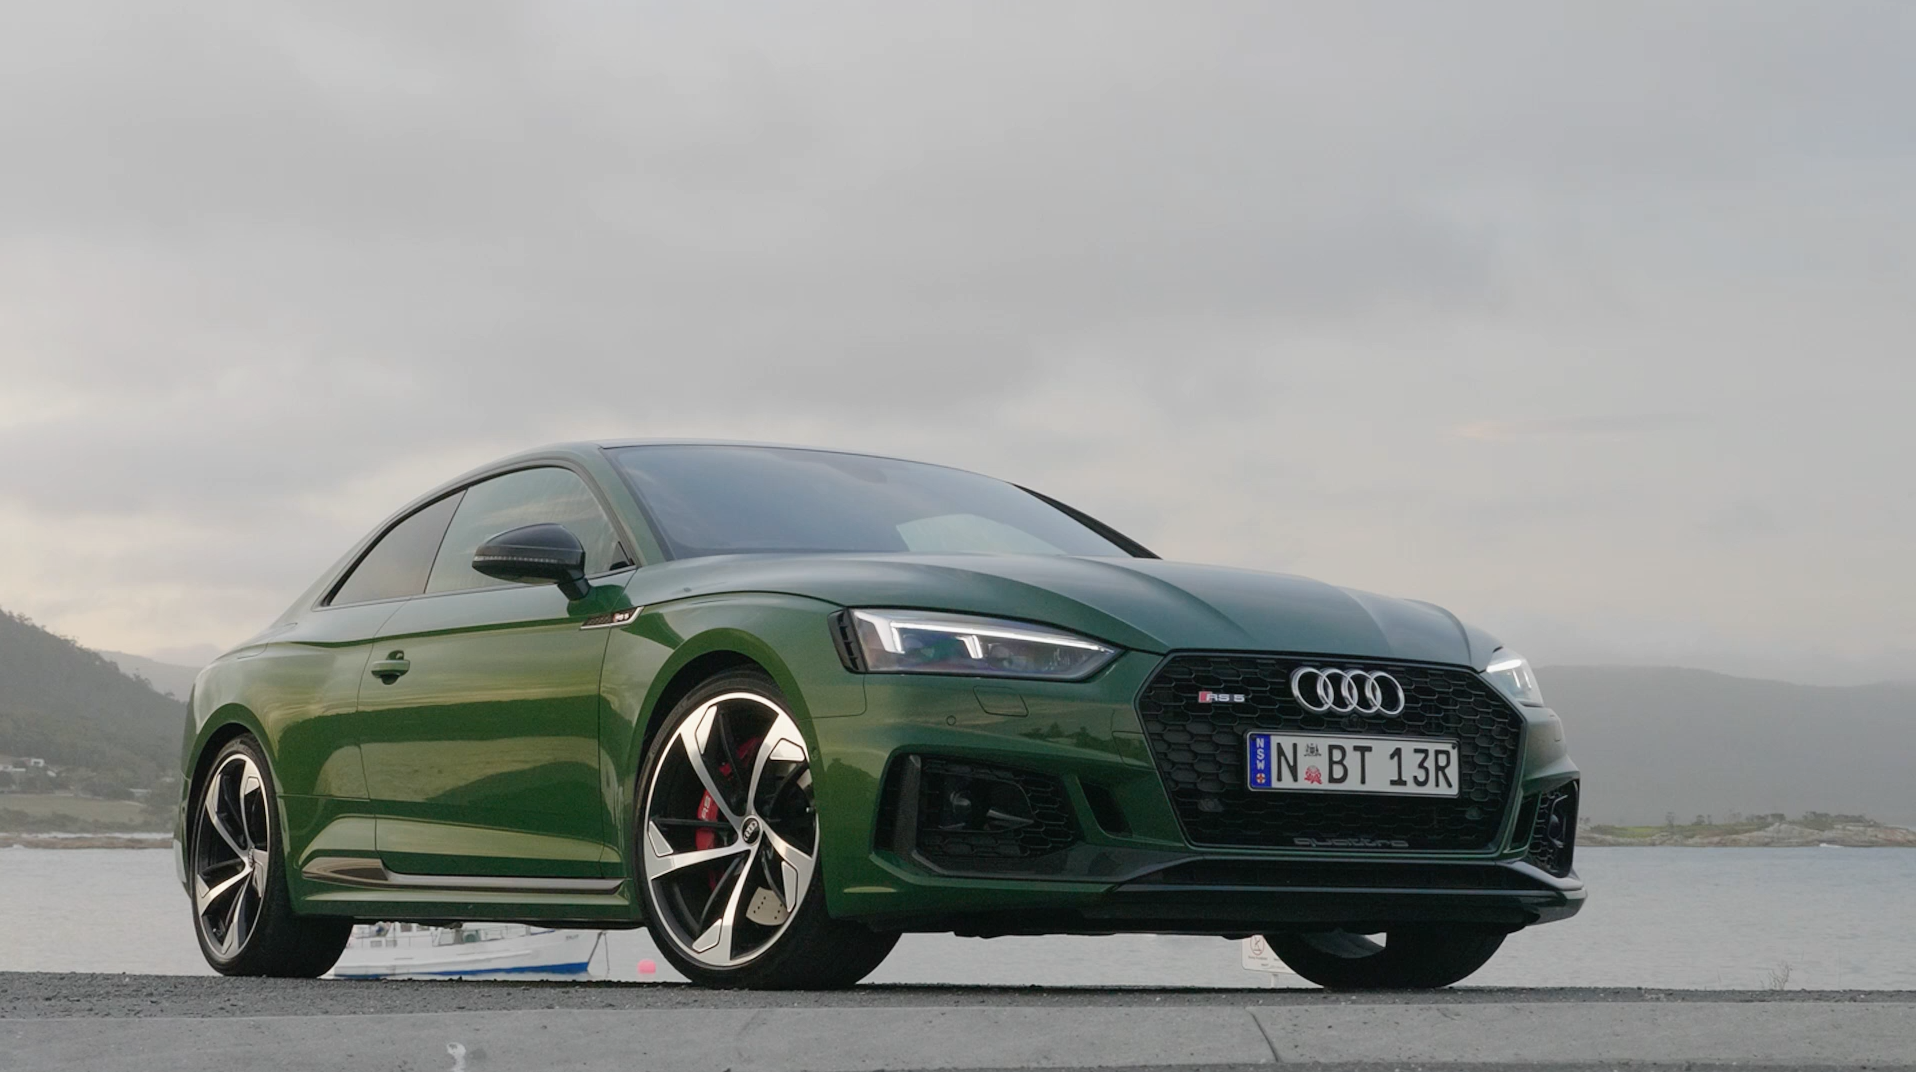 The scintillating all-new Audi RS 5 Coupe has landed in Australia...